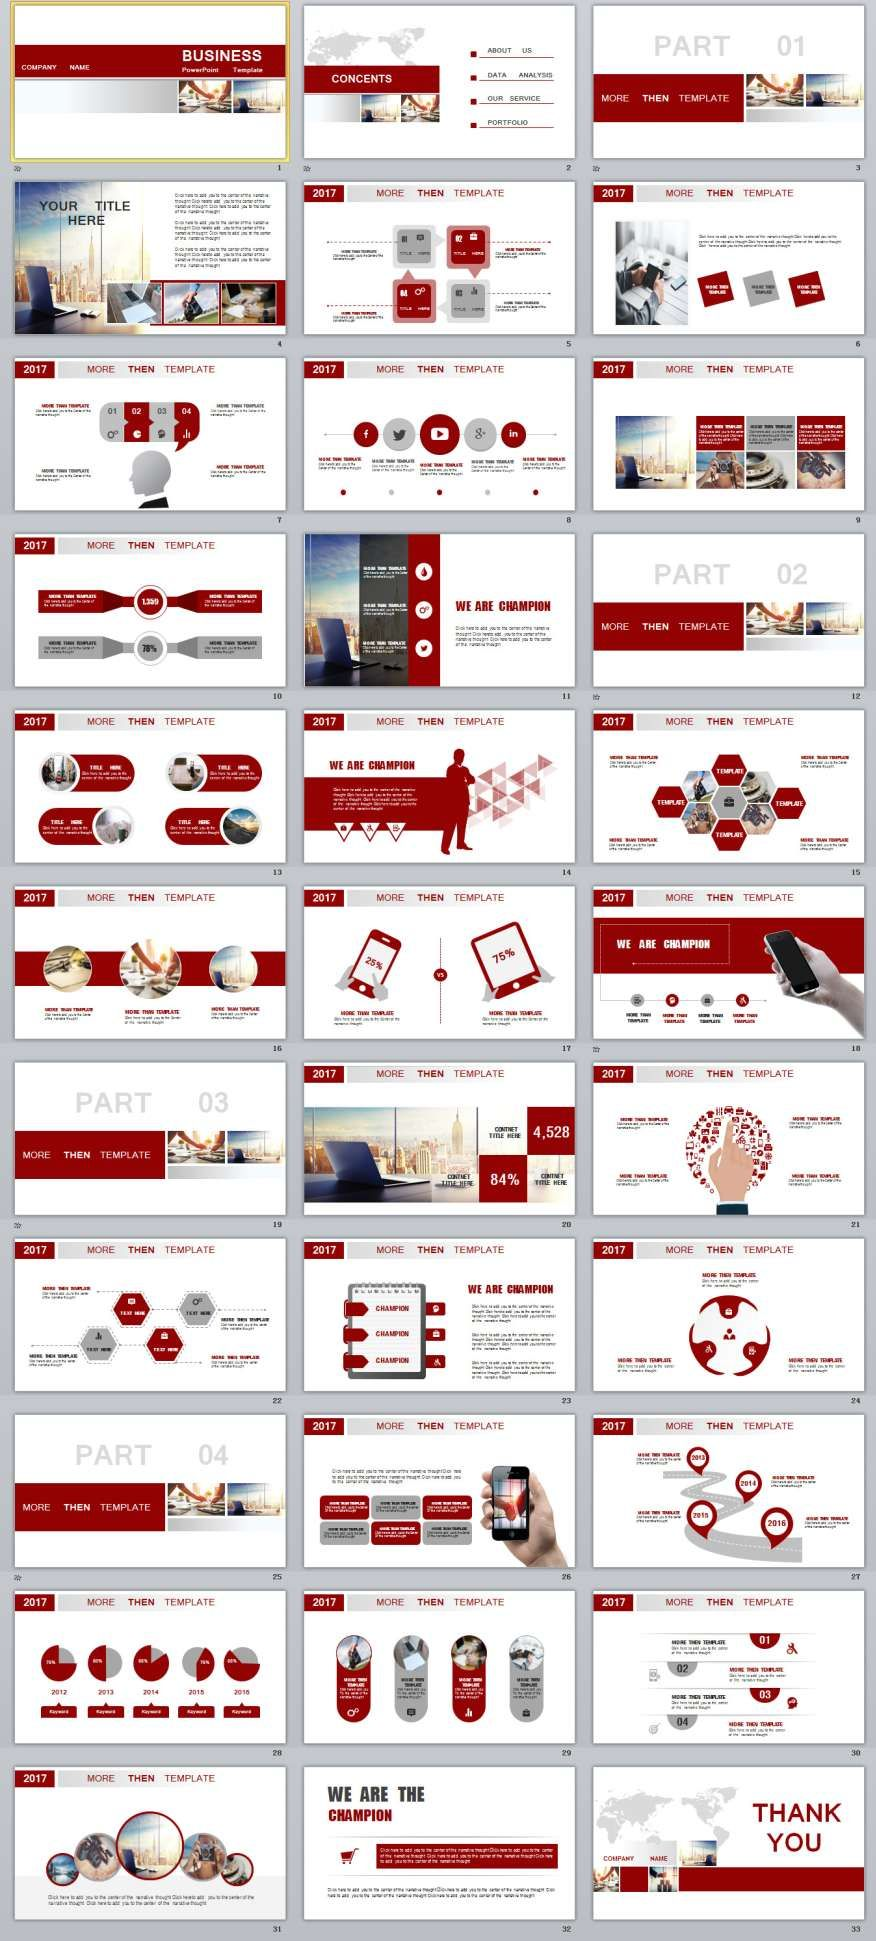 33 red business report powerpoint templates 2018 business 33 red business report powerpoint templates toneelgroepblik Choice Image